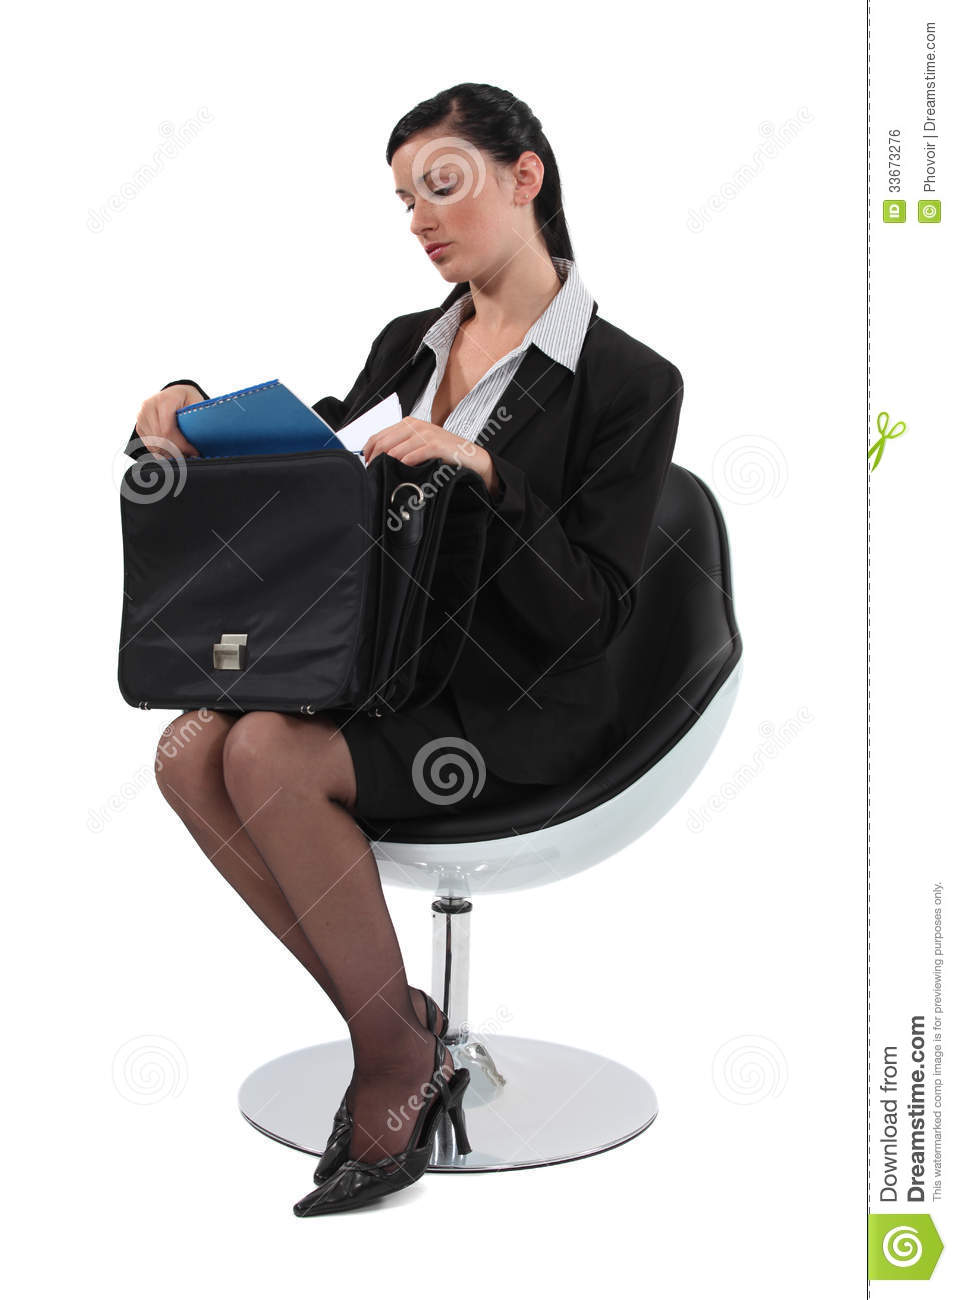 Employee sitting on a chair